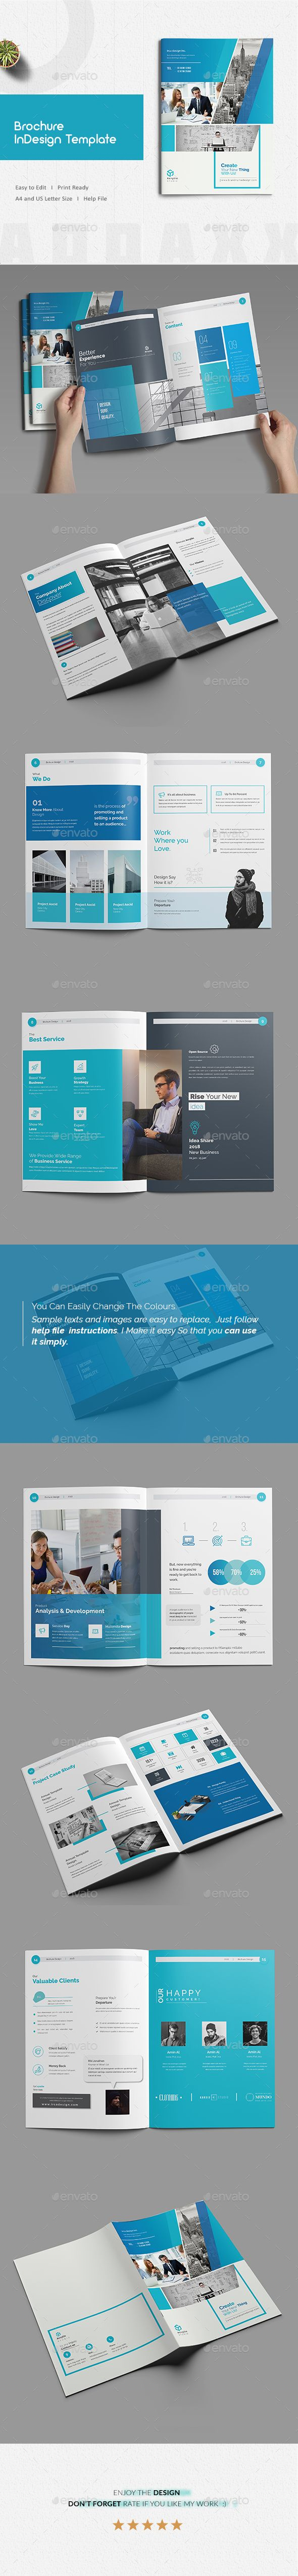 Best Brochure Indesign Template Images On Pinterest Indesign - Brochure indesign templates